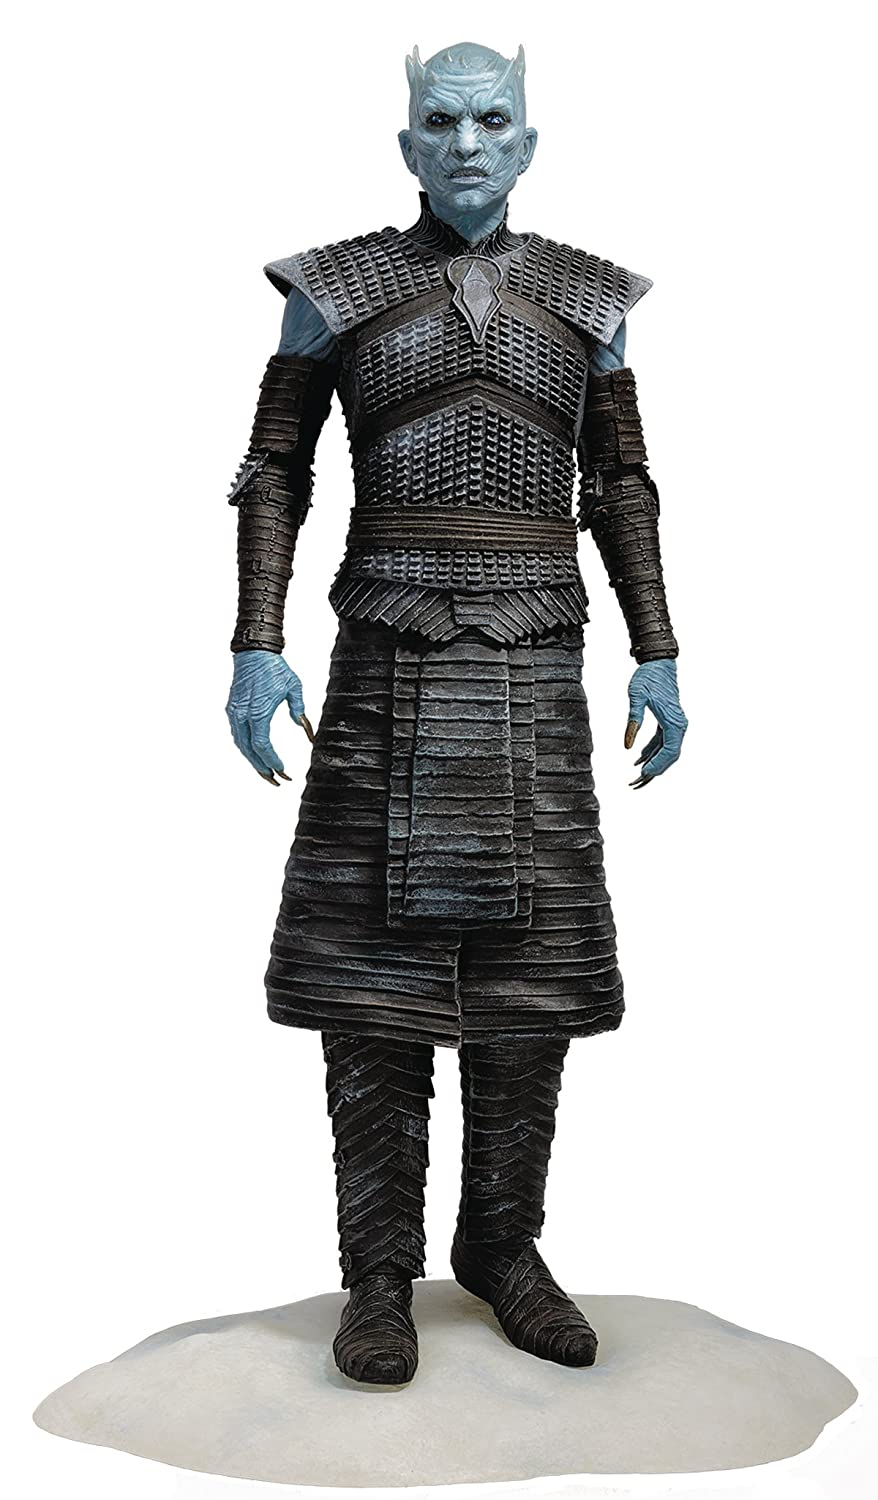 Dark Horse Deluxe Game of Thrones: The Night King Figure Action Figure B01BW5KLZK